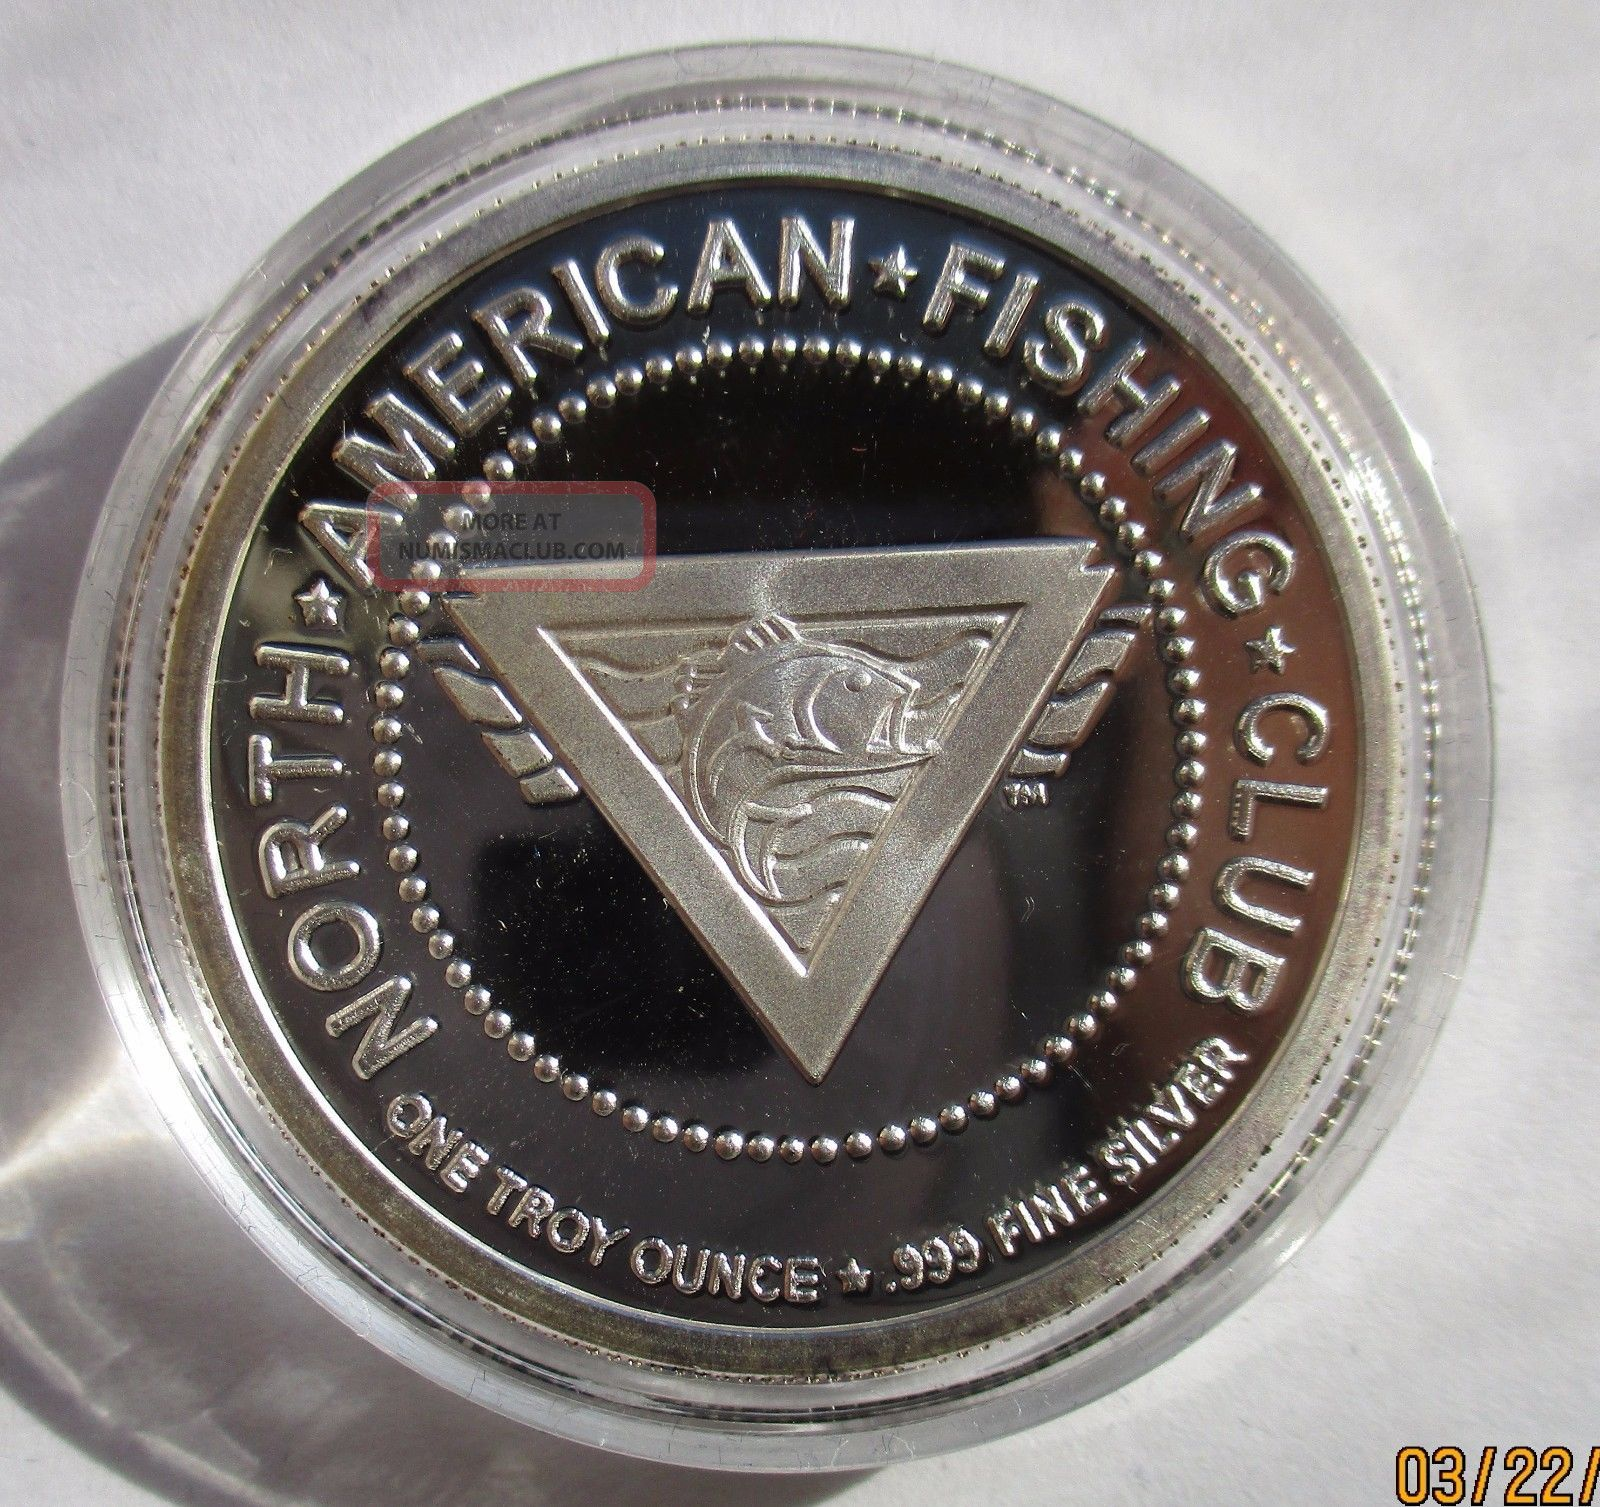 North America Fishing Club 1oz 999 Pure Silver Round